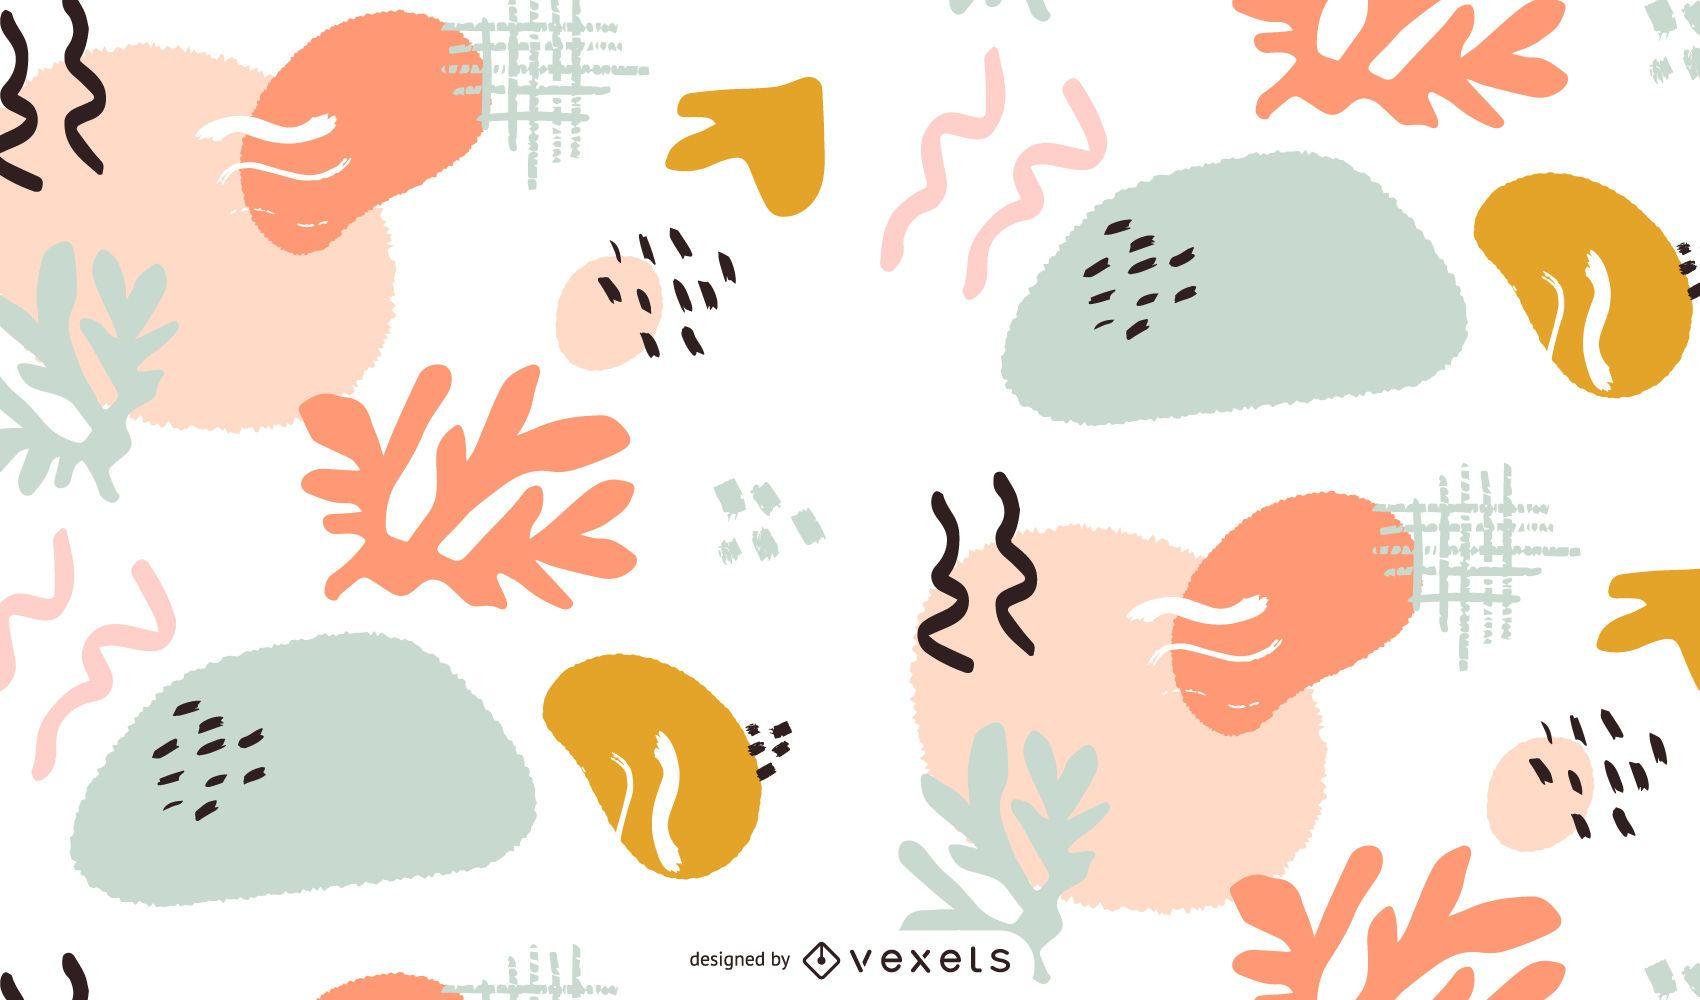 Abstract artistic pattern design